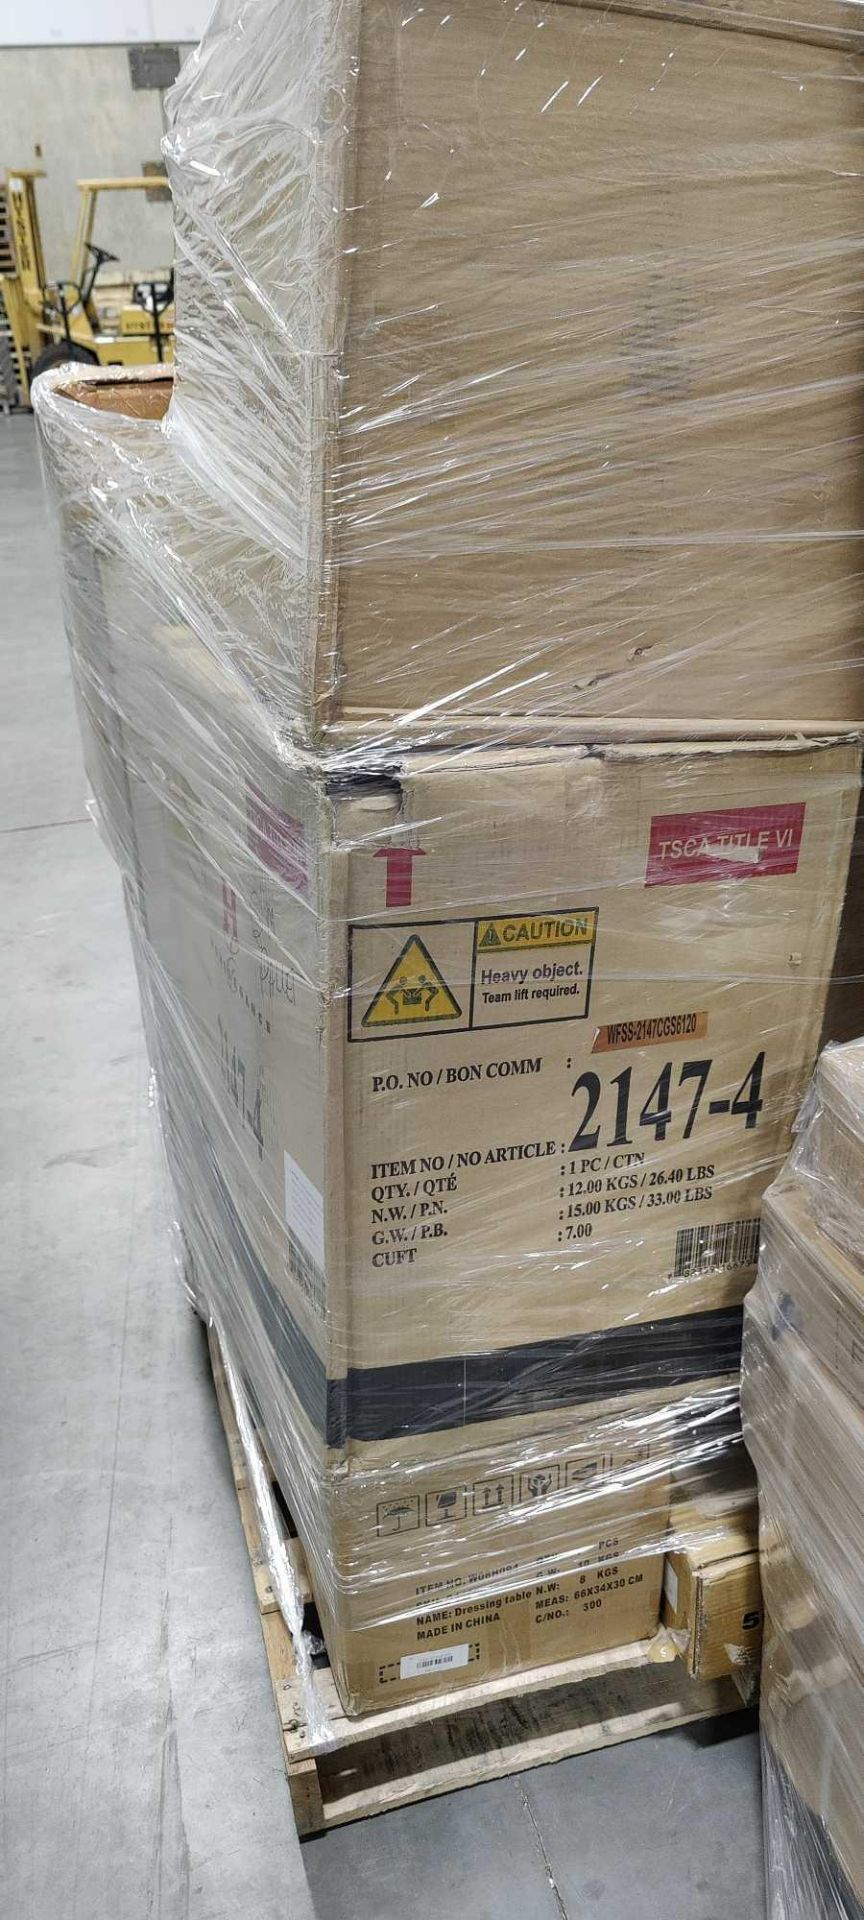 Two Pallets - Image 11 of 12